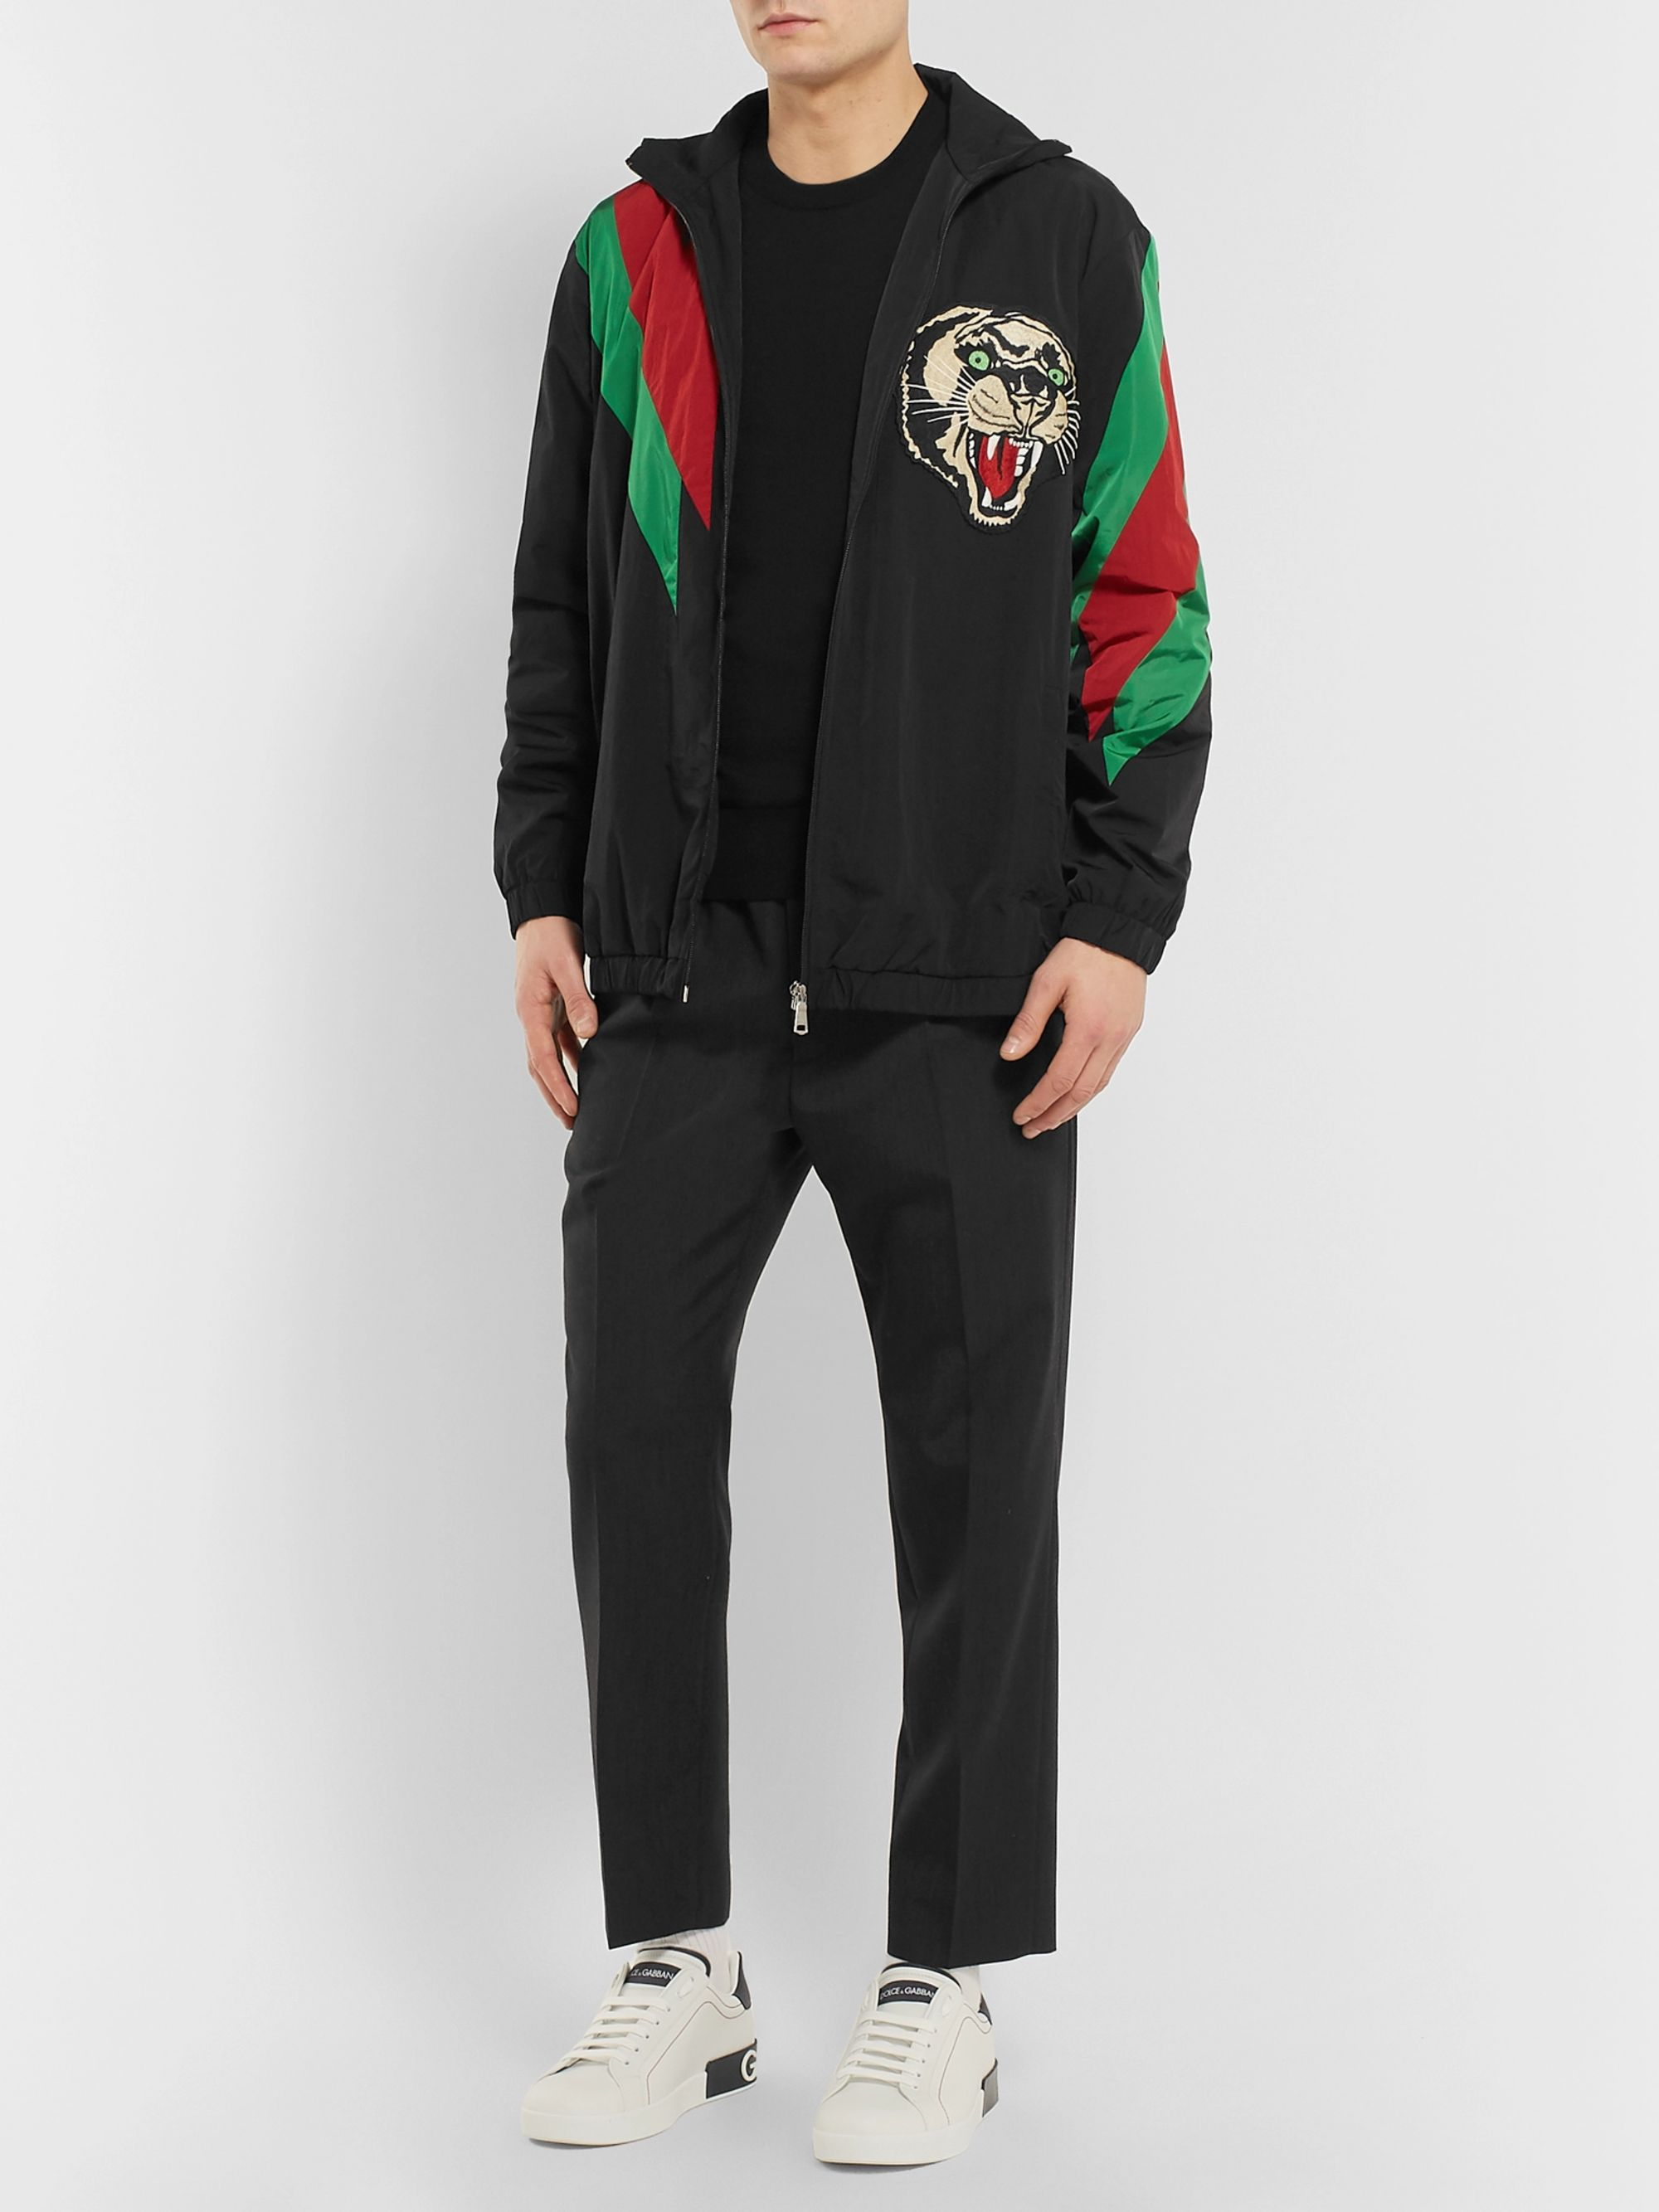 Dolce & Gabbana Slim-Fit Logo-Appliquéd Virgin Wool Sweater